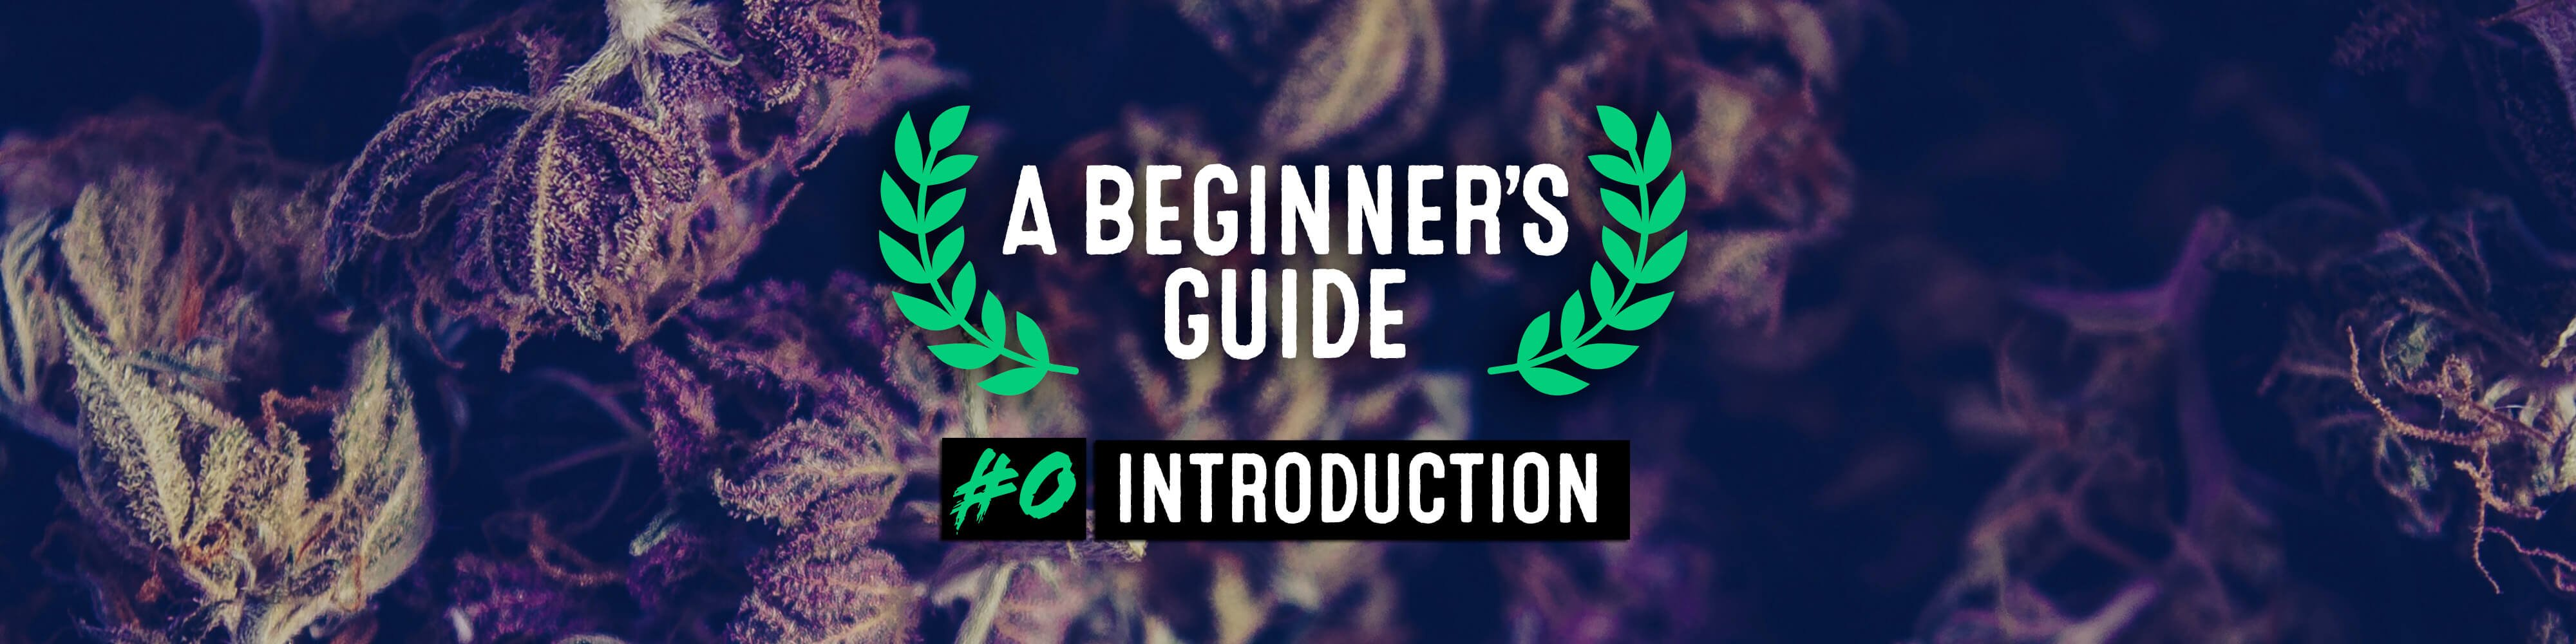 a beginners guide introduction